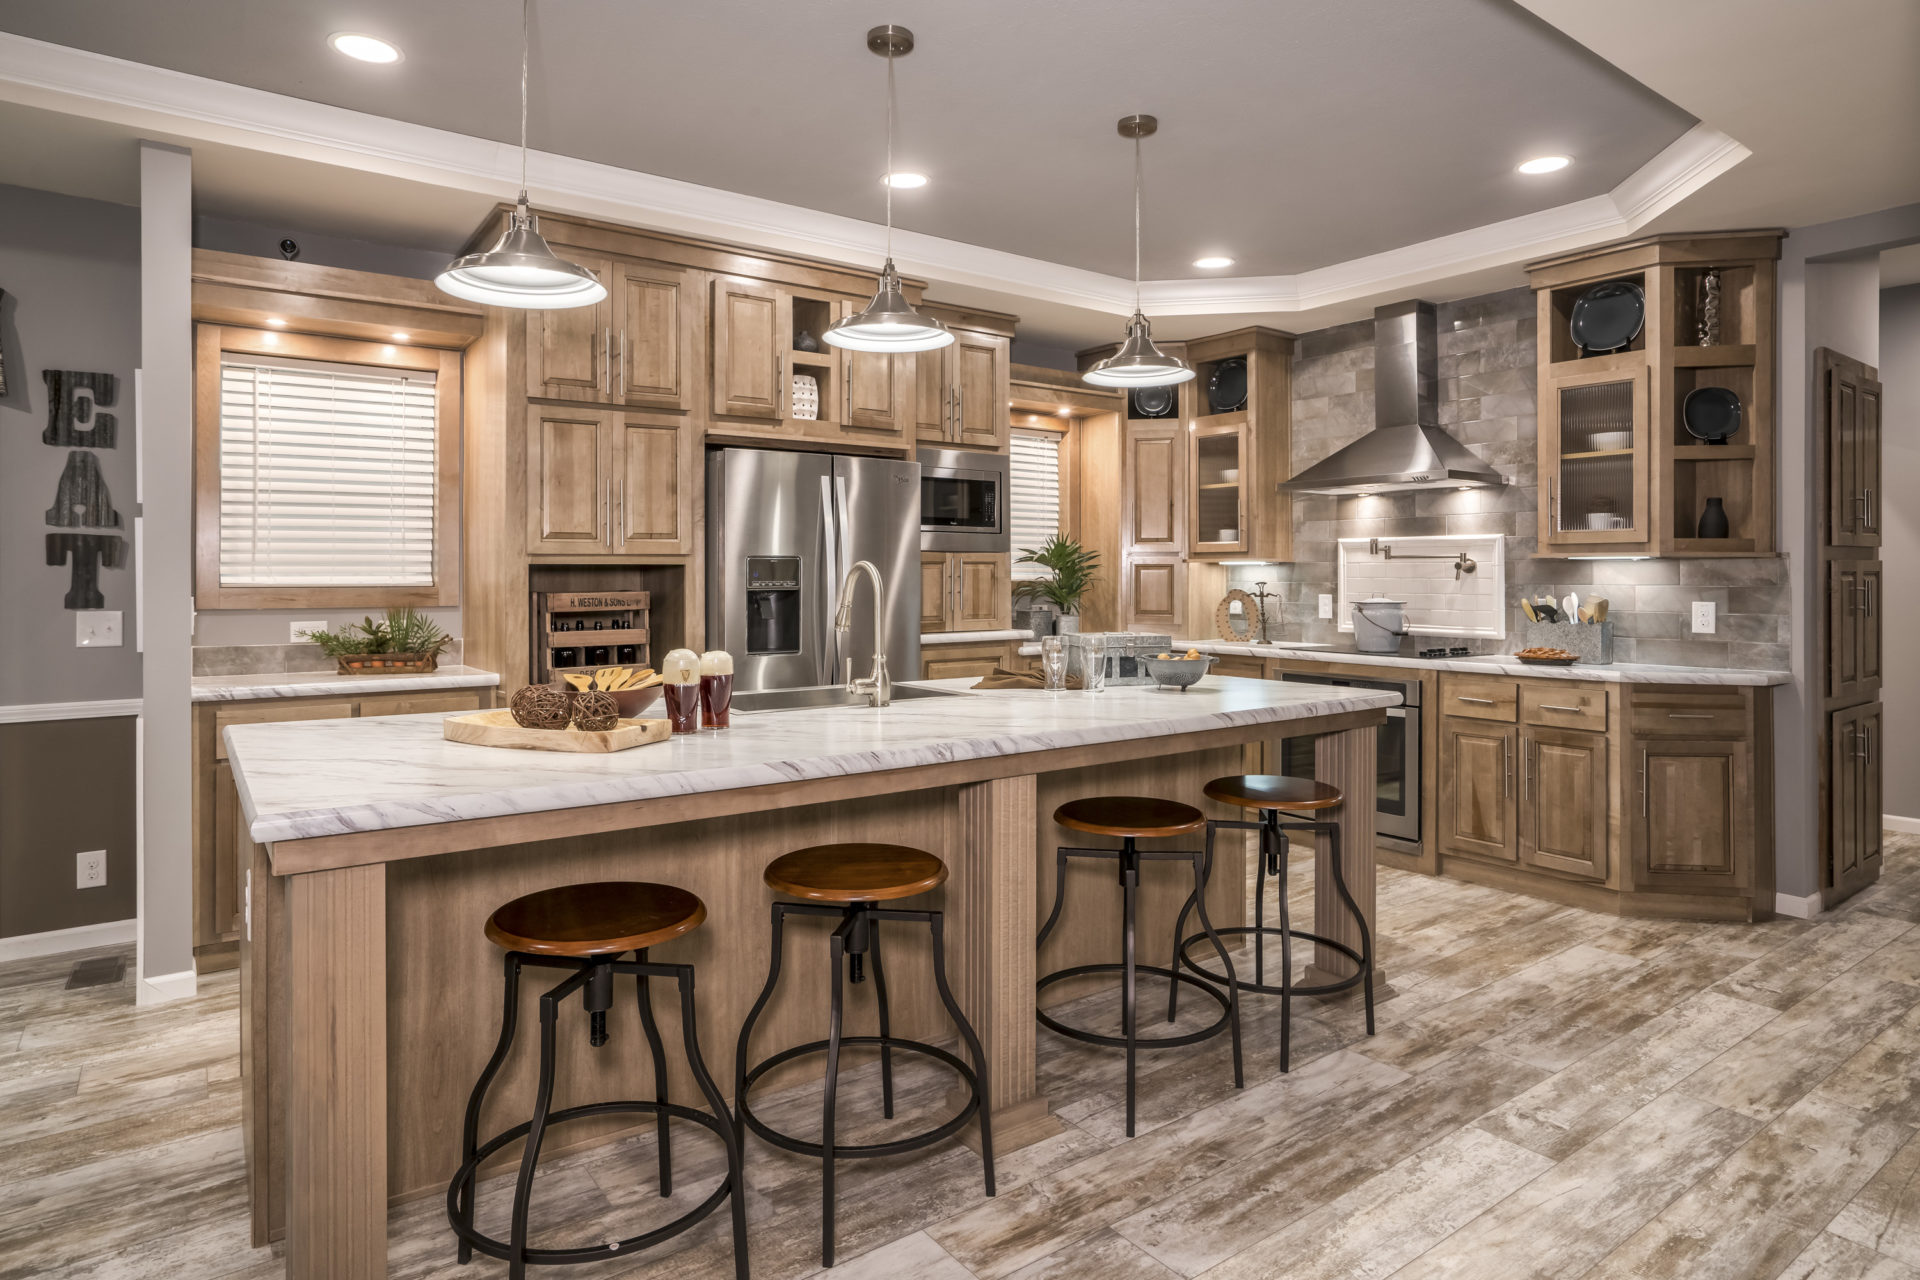 South Eastern Michigan S Premiere Kitchen: LIFEWAY HOMES OF TULSA DEBUTS NEW